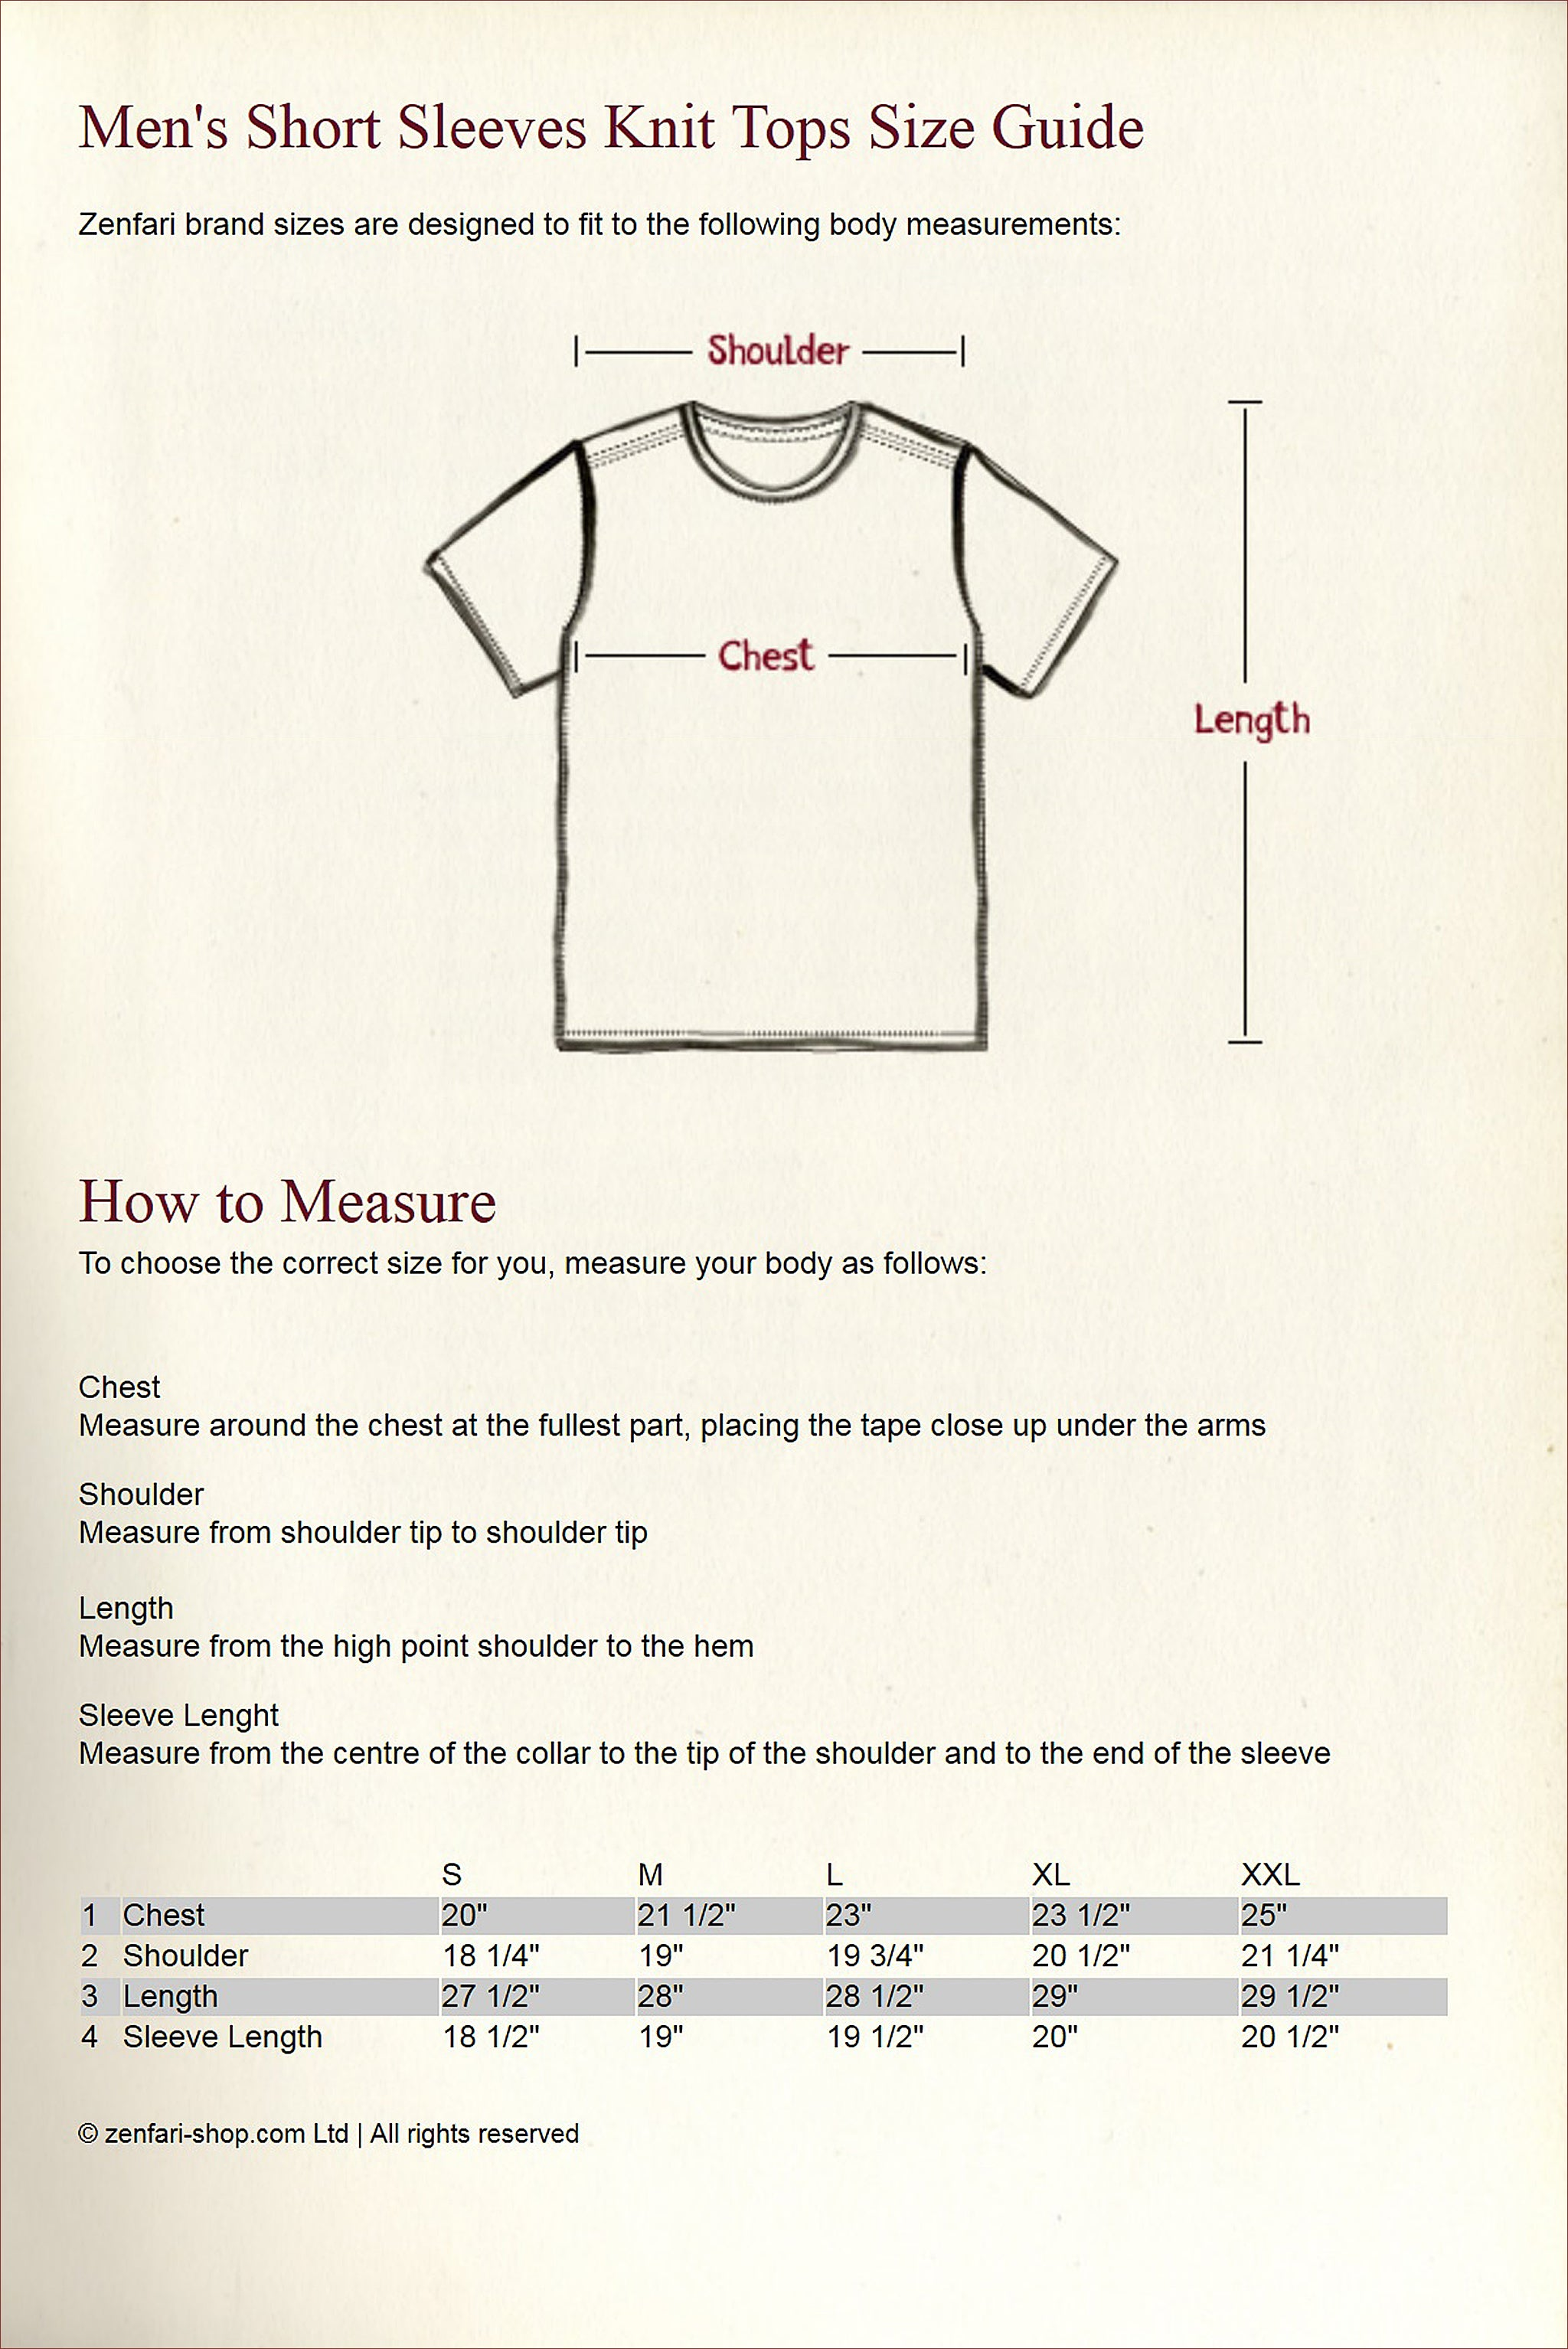 Knit Tops Size Guide - Short Sleeves